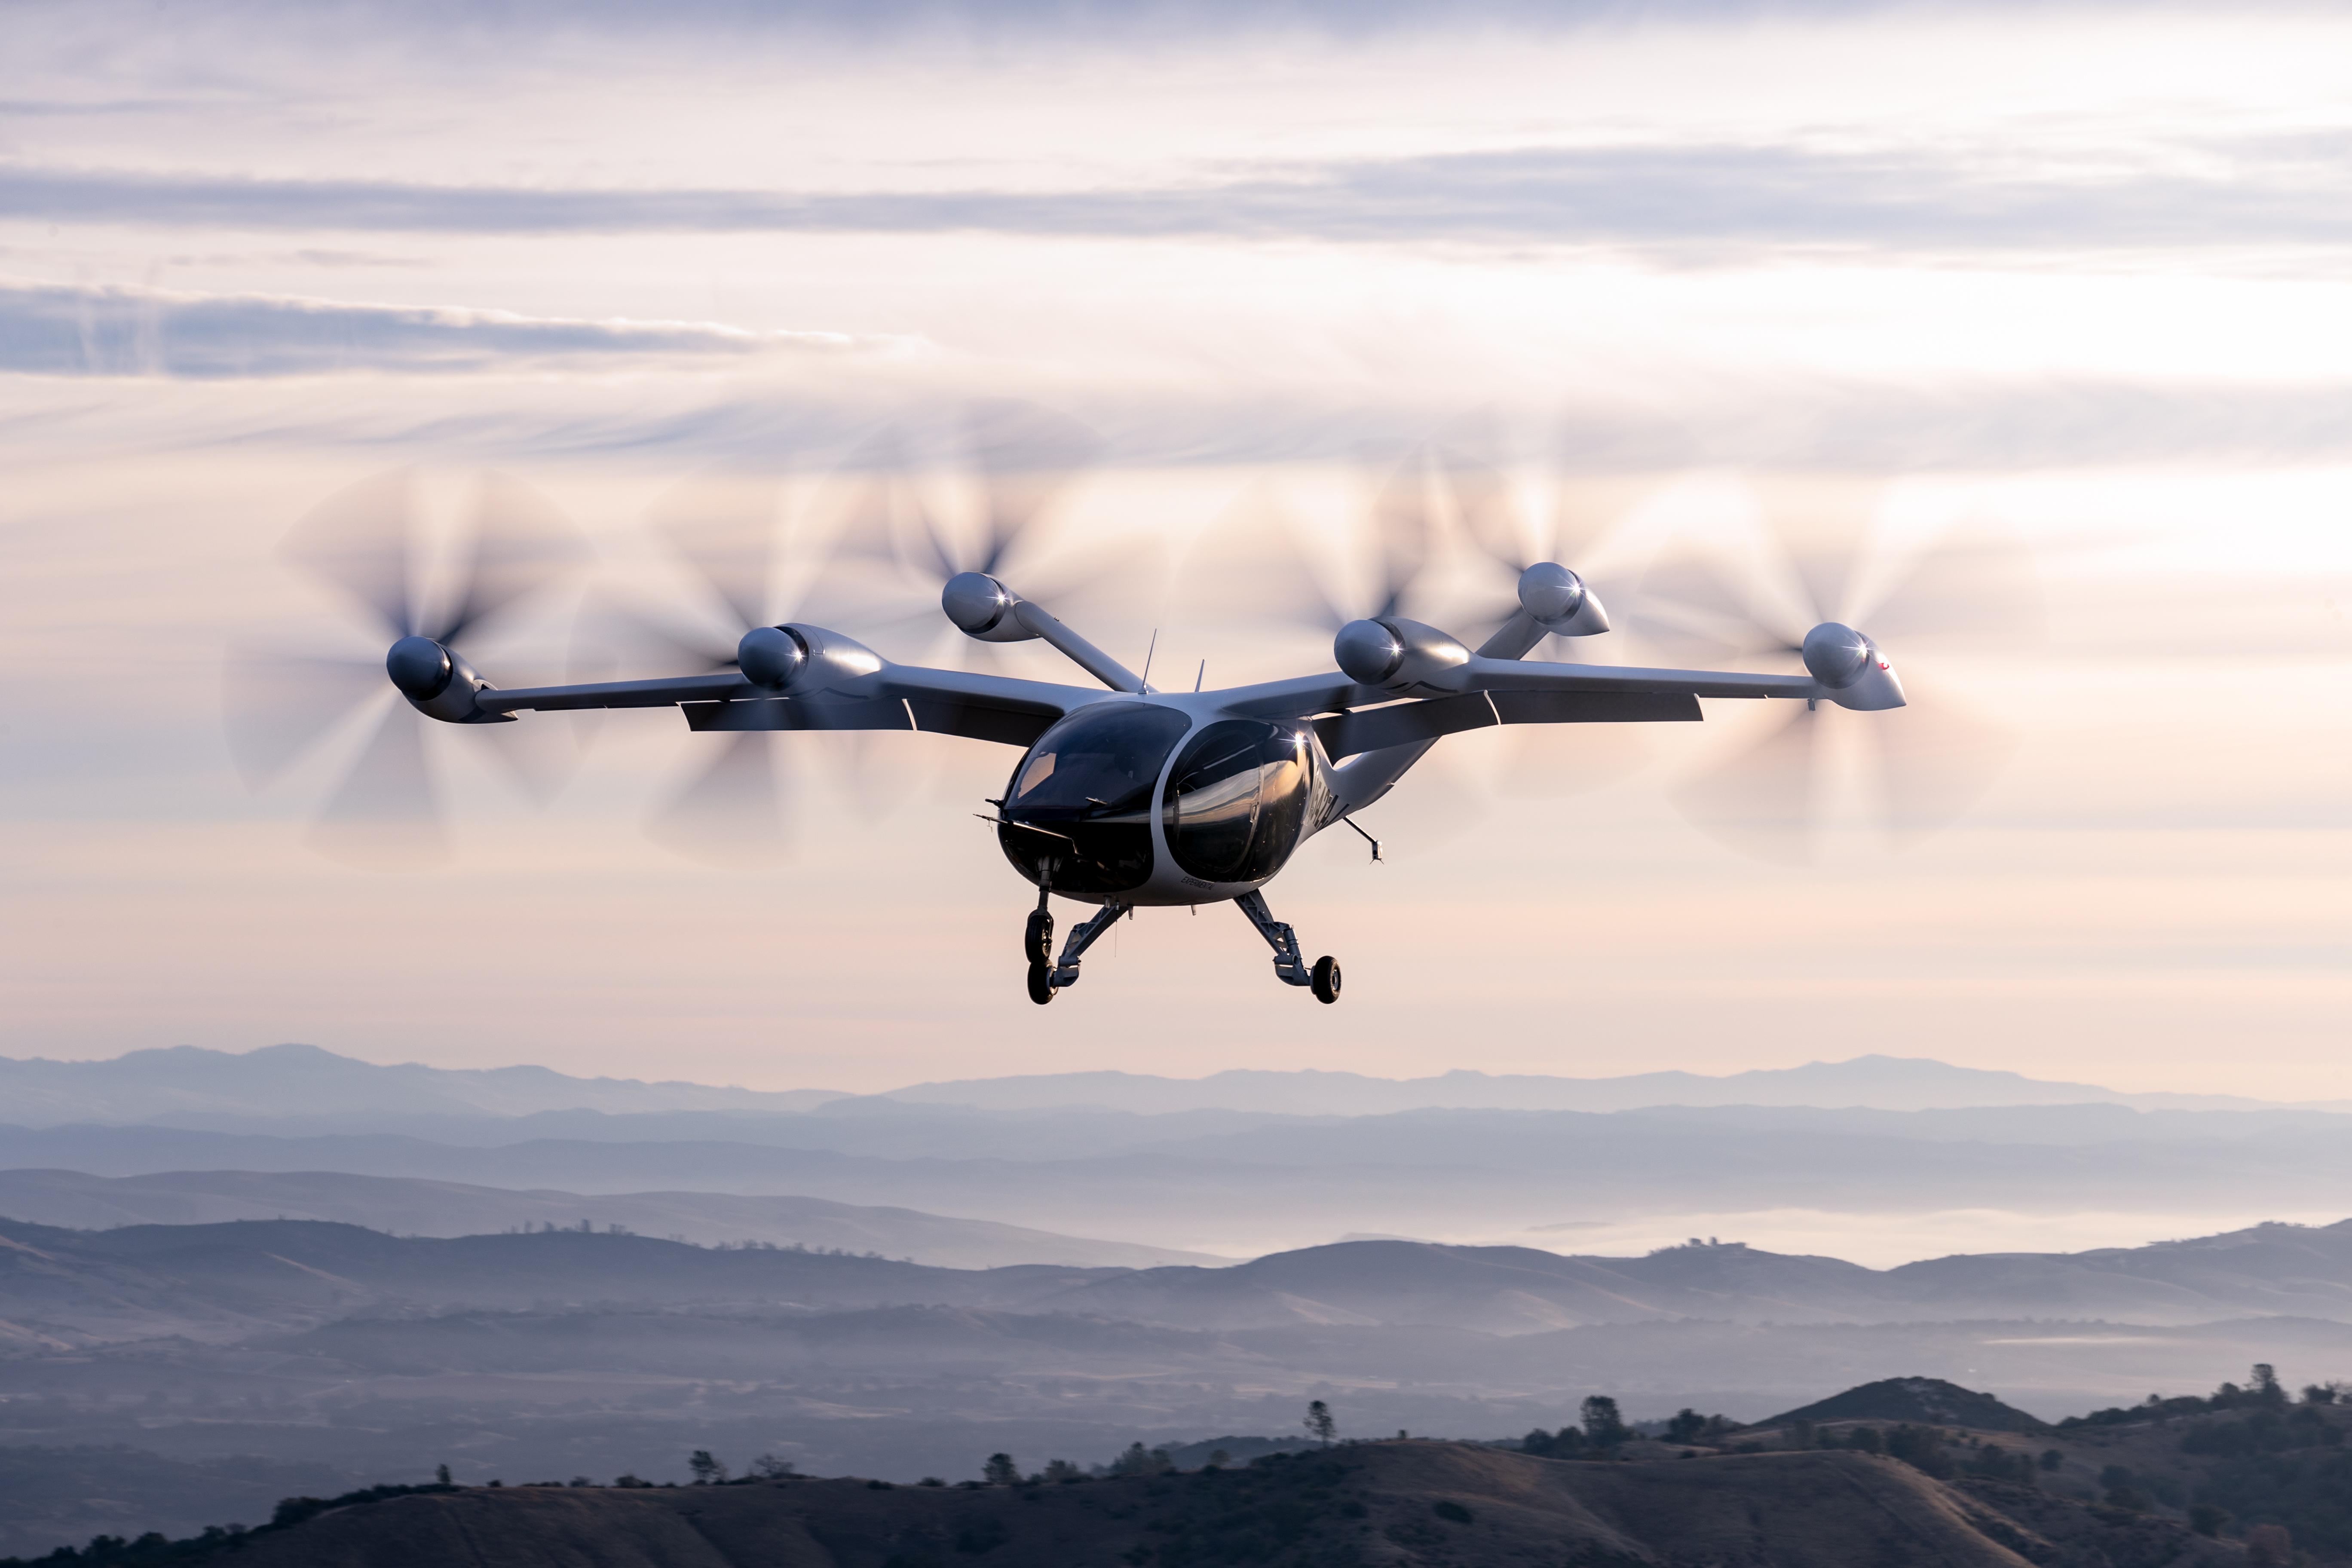 Joby seems poised to dominate the early stages of the eVTOL market, with an excellent aircraft and strong positions in manufacturing, certification, customer service, finance and now ground-based infrastructure